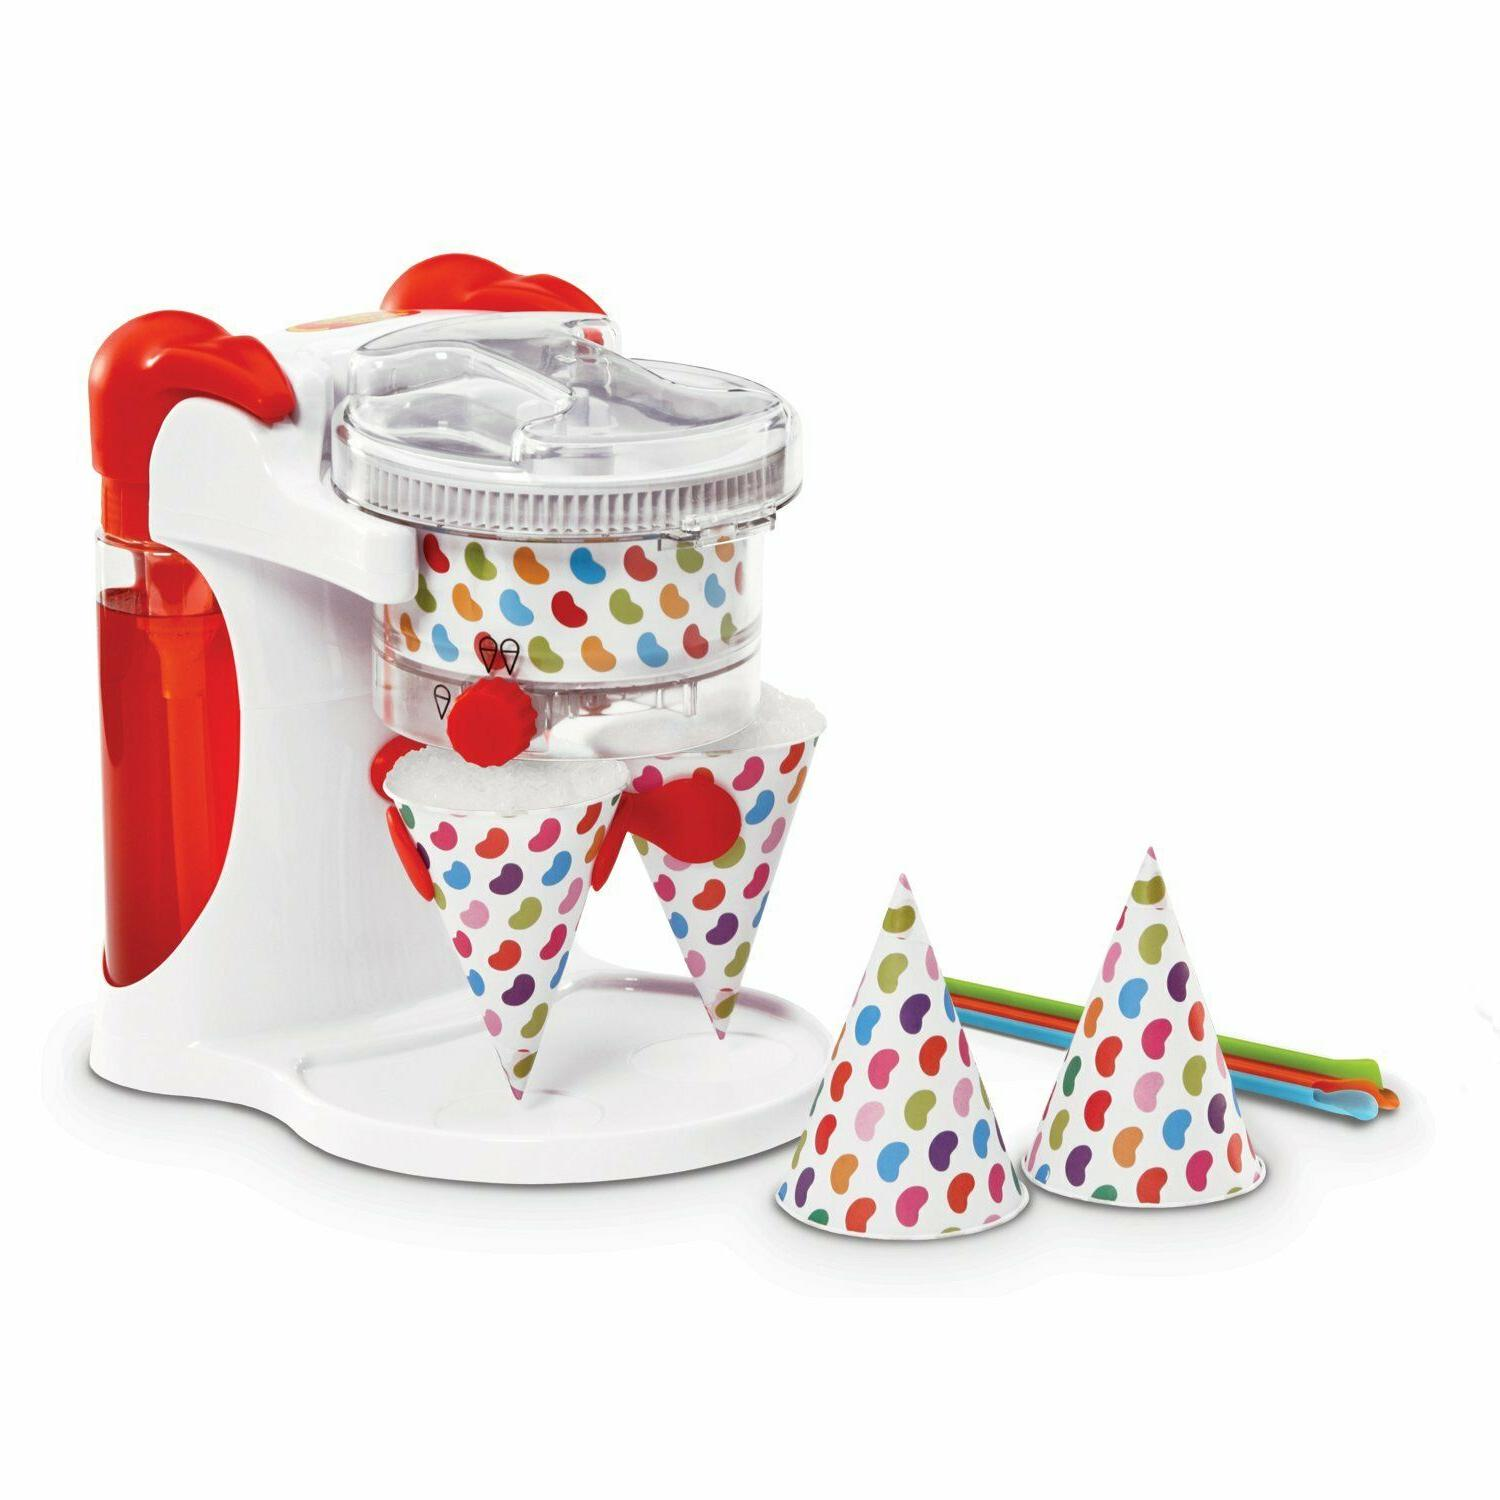 Jelly Belly - Dual Ice Shaver - Multicolored